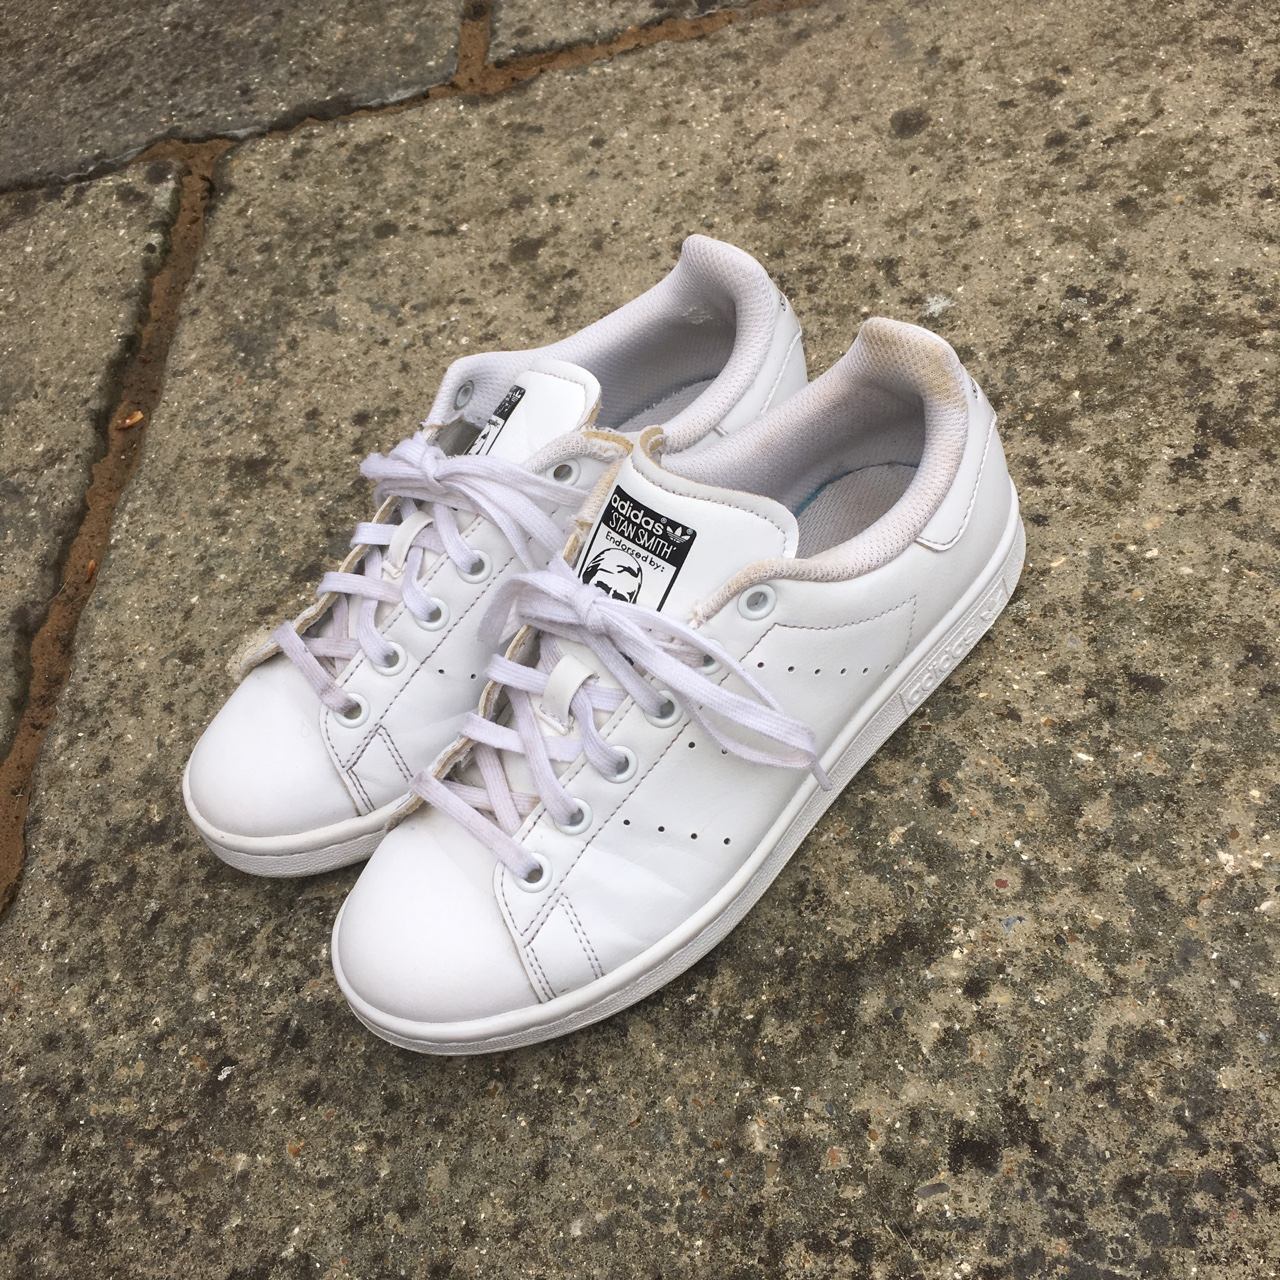 hot sales 04a6f 60a7d All white Adidas stan smith trainers. Worn with... - Depop